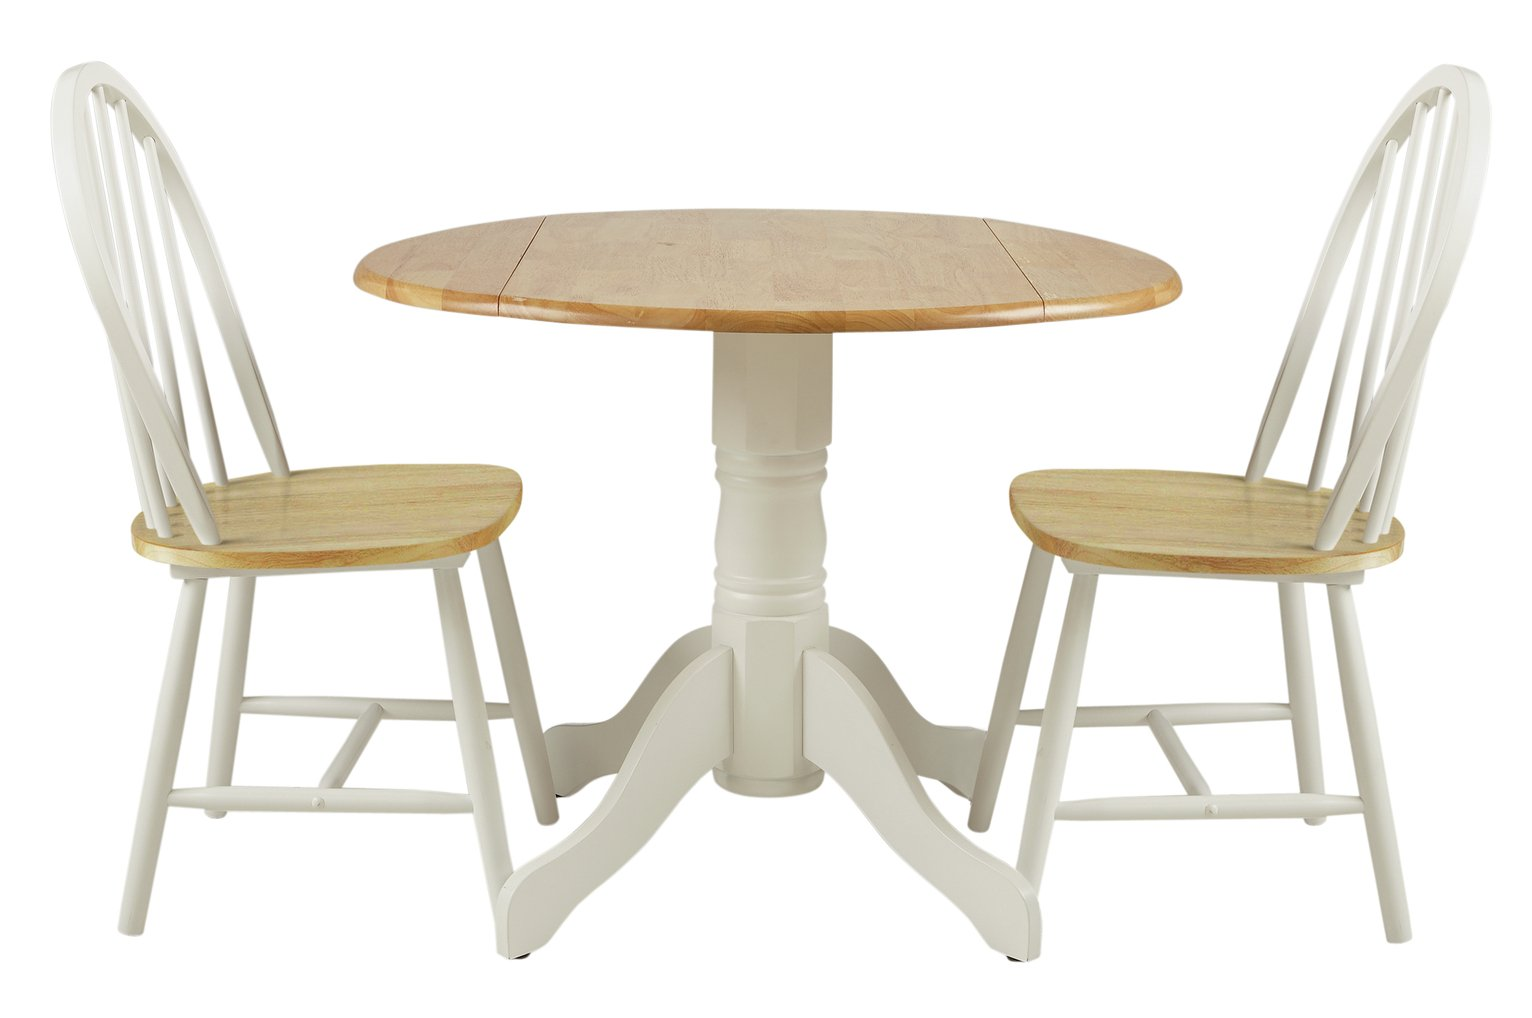 Sale on collection kentucky drop leaf table and 2 chairs two tone the collection by argos now - Drop leaf table and chairs uk ...